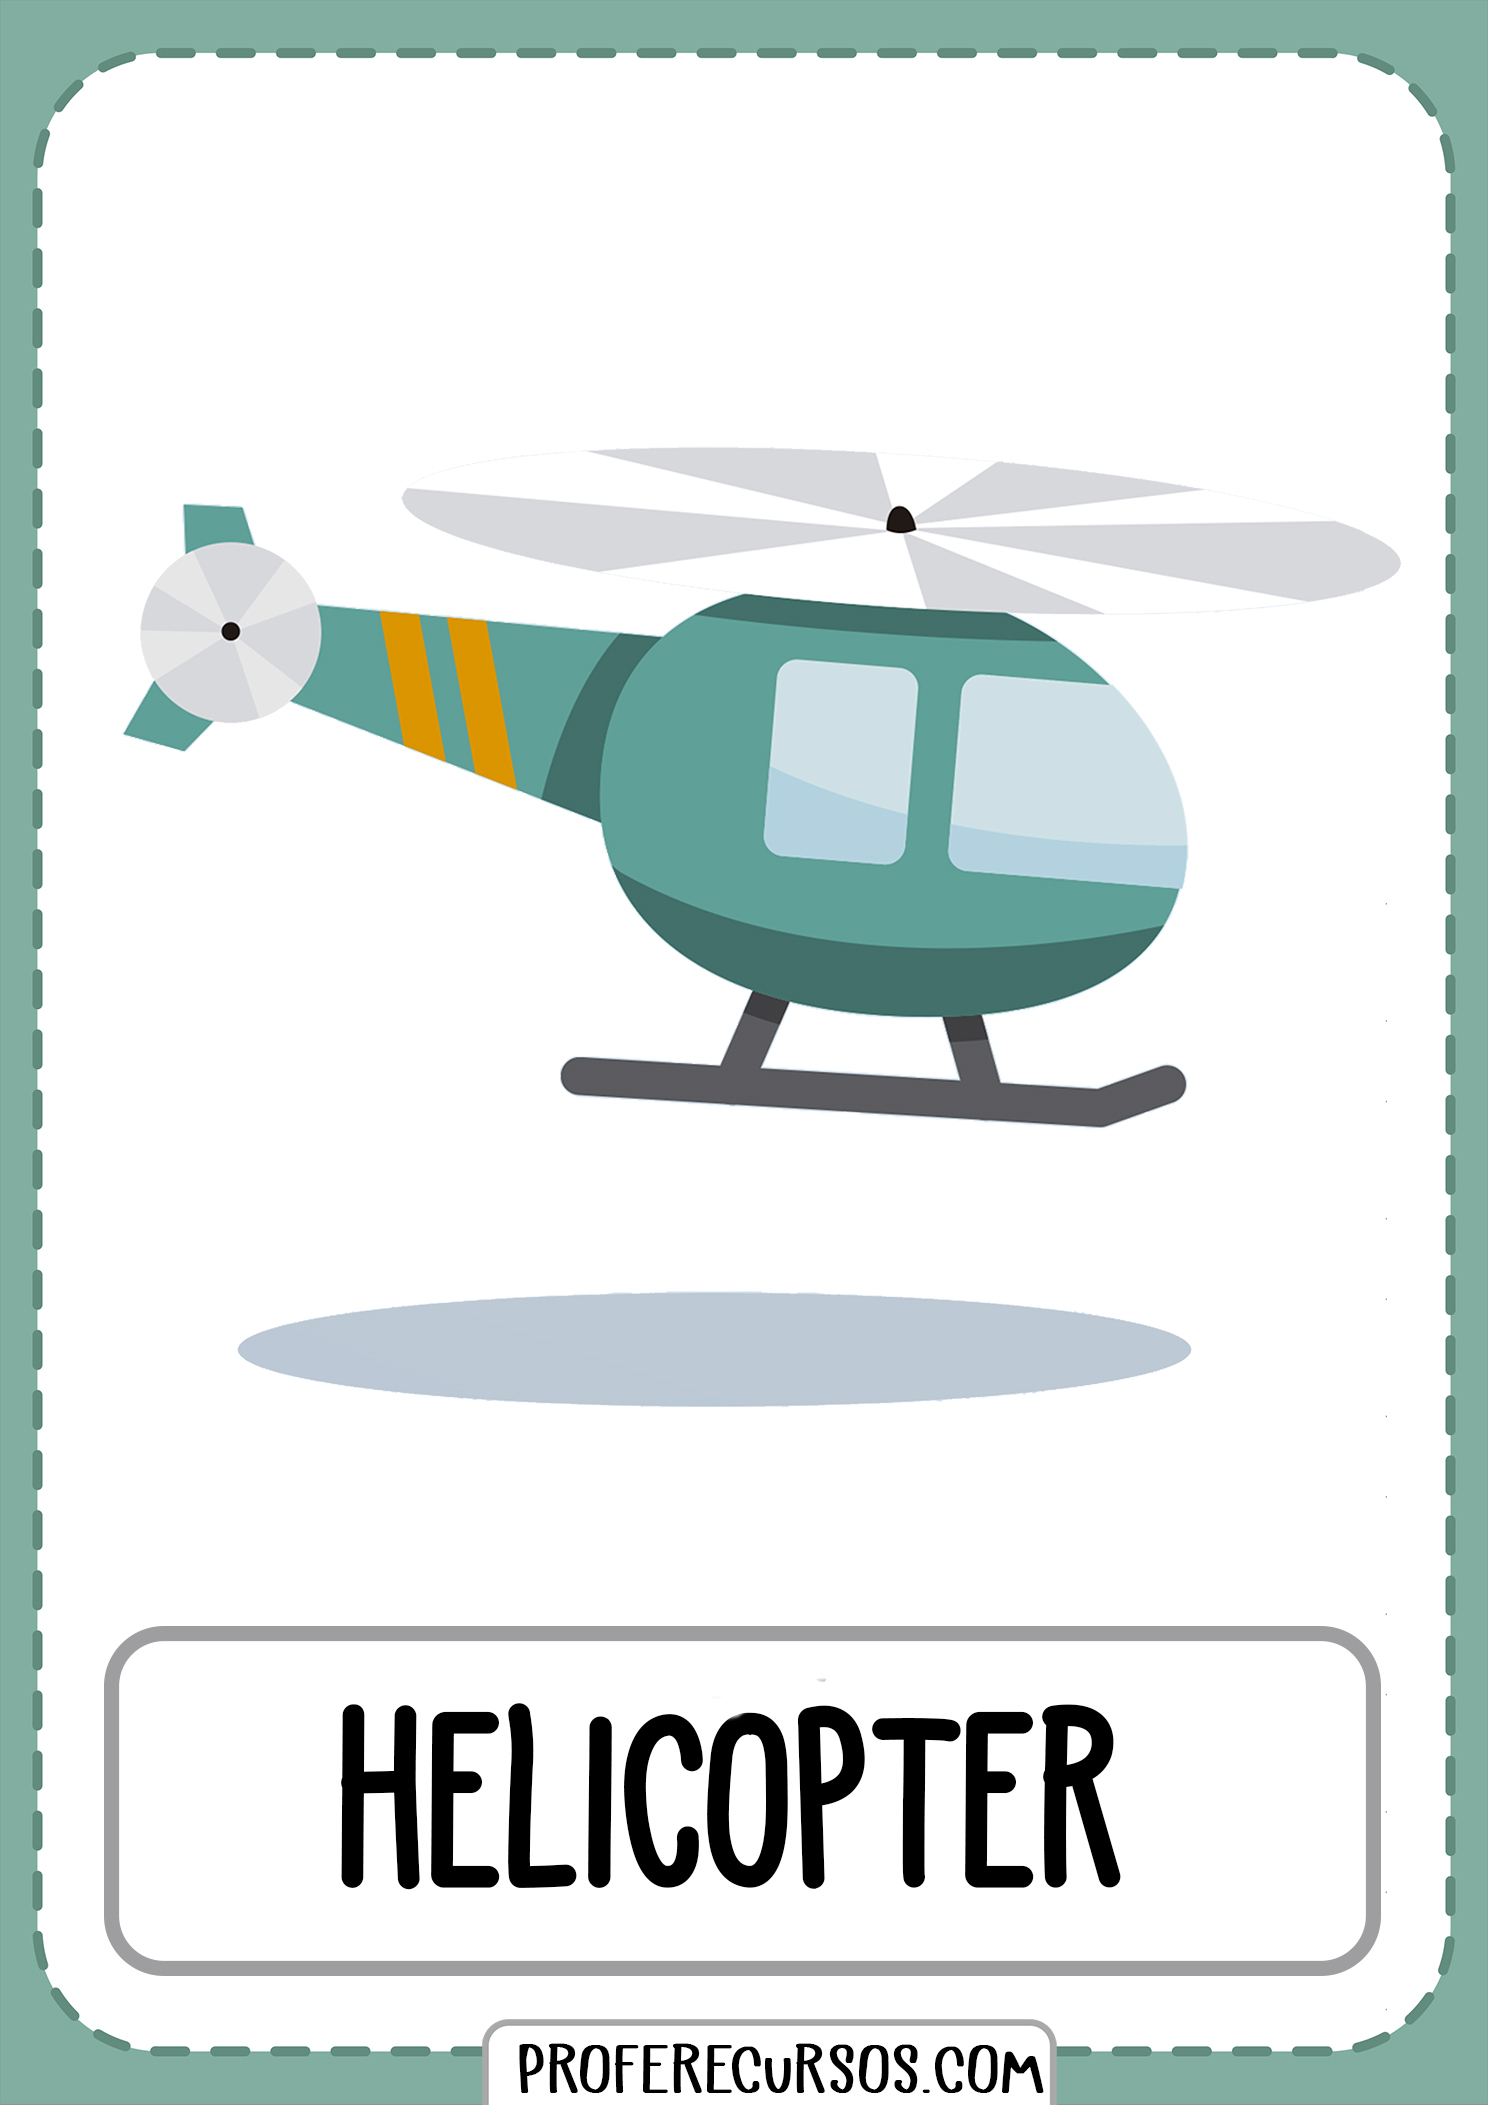 Means-of-transport-vocabulary-helicopter